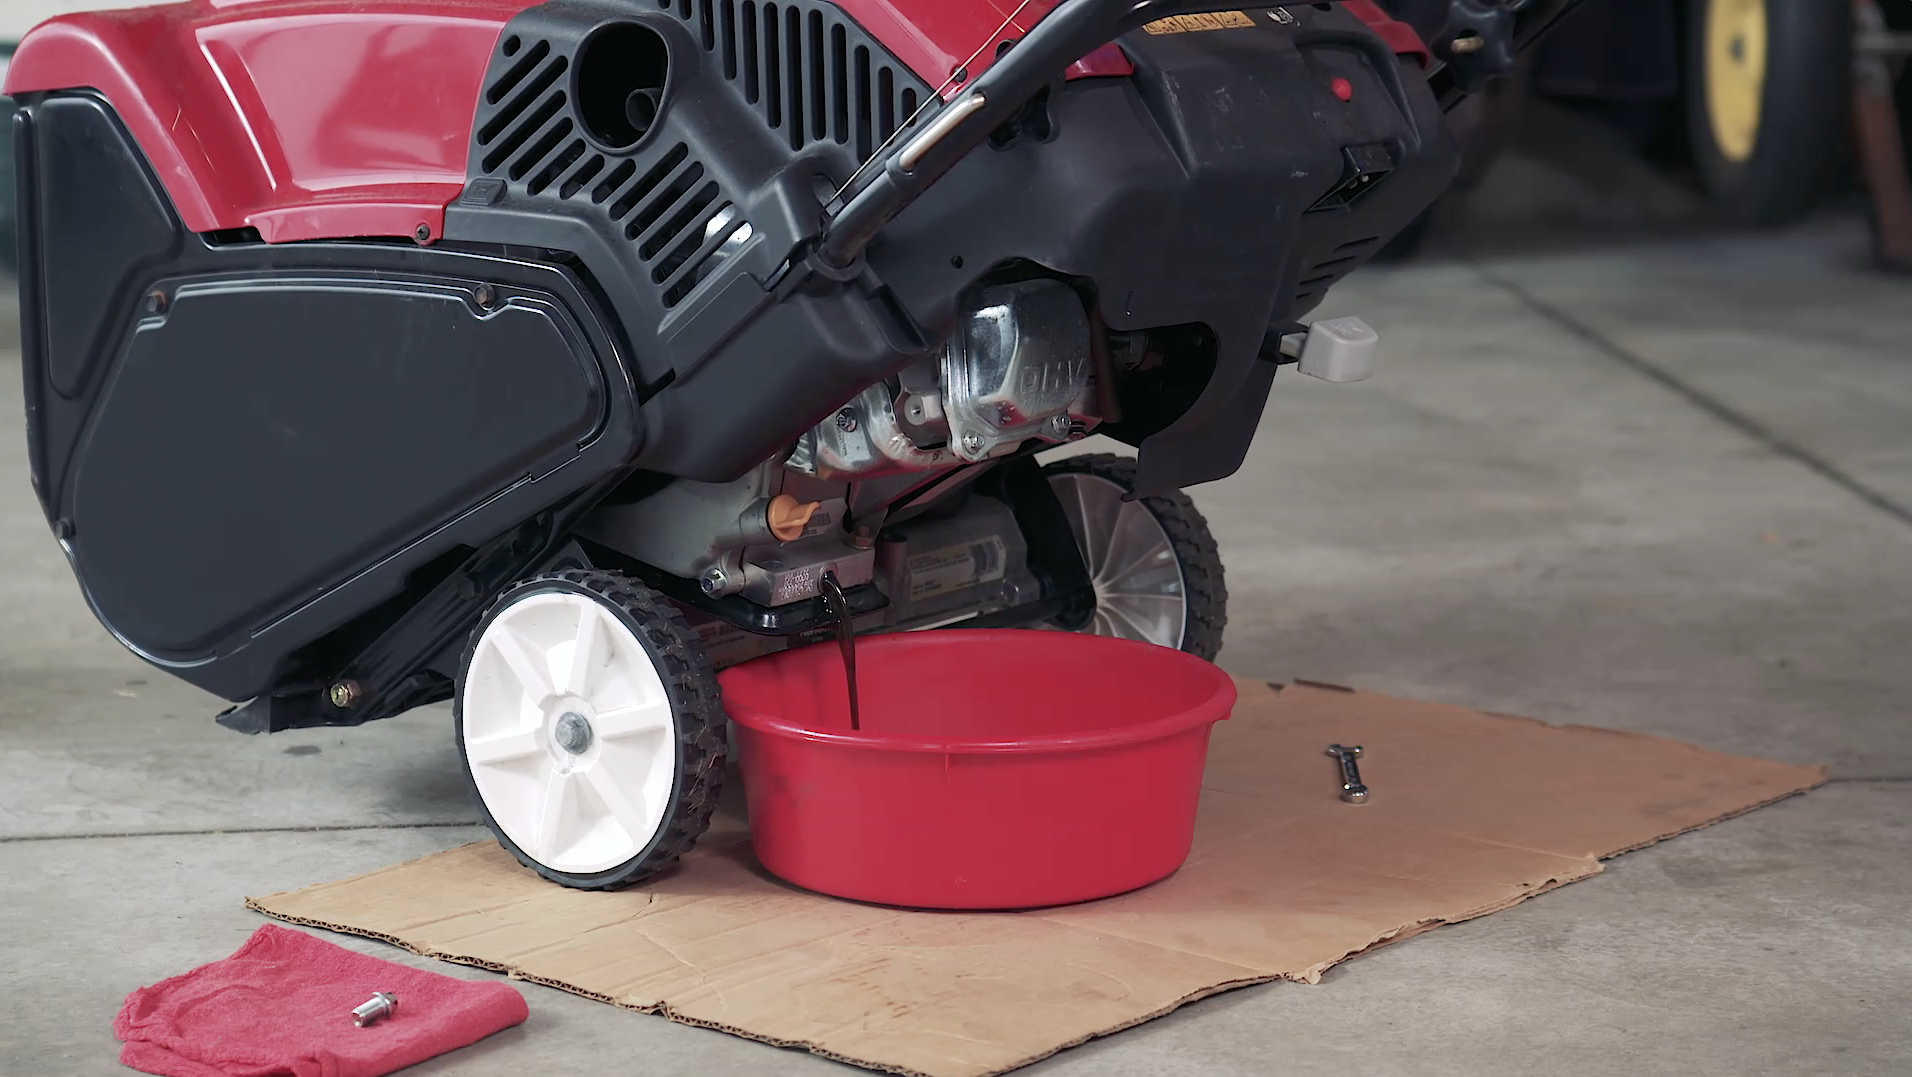 How to Change Engine Oil on a Single-Stage Snowblower | Yard